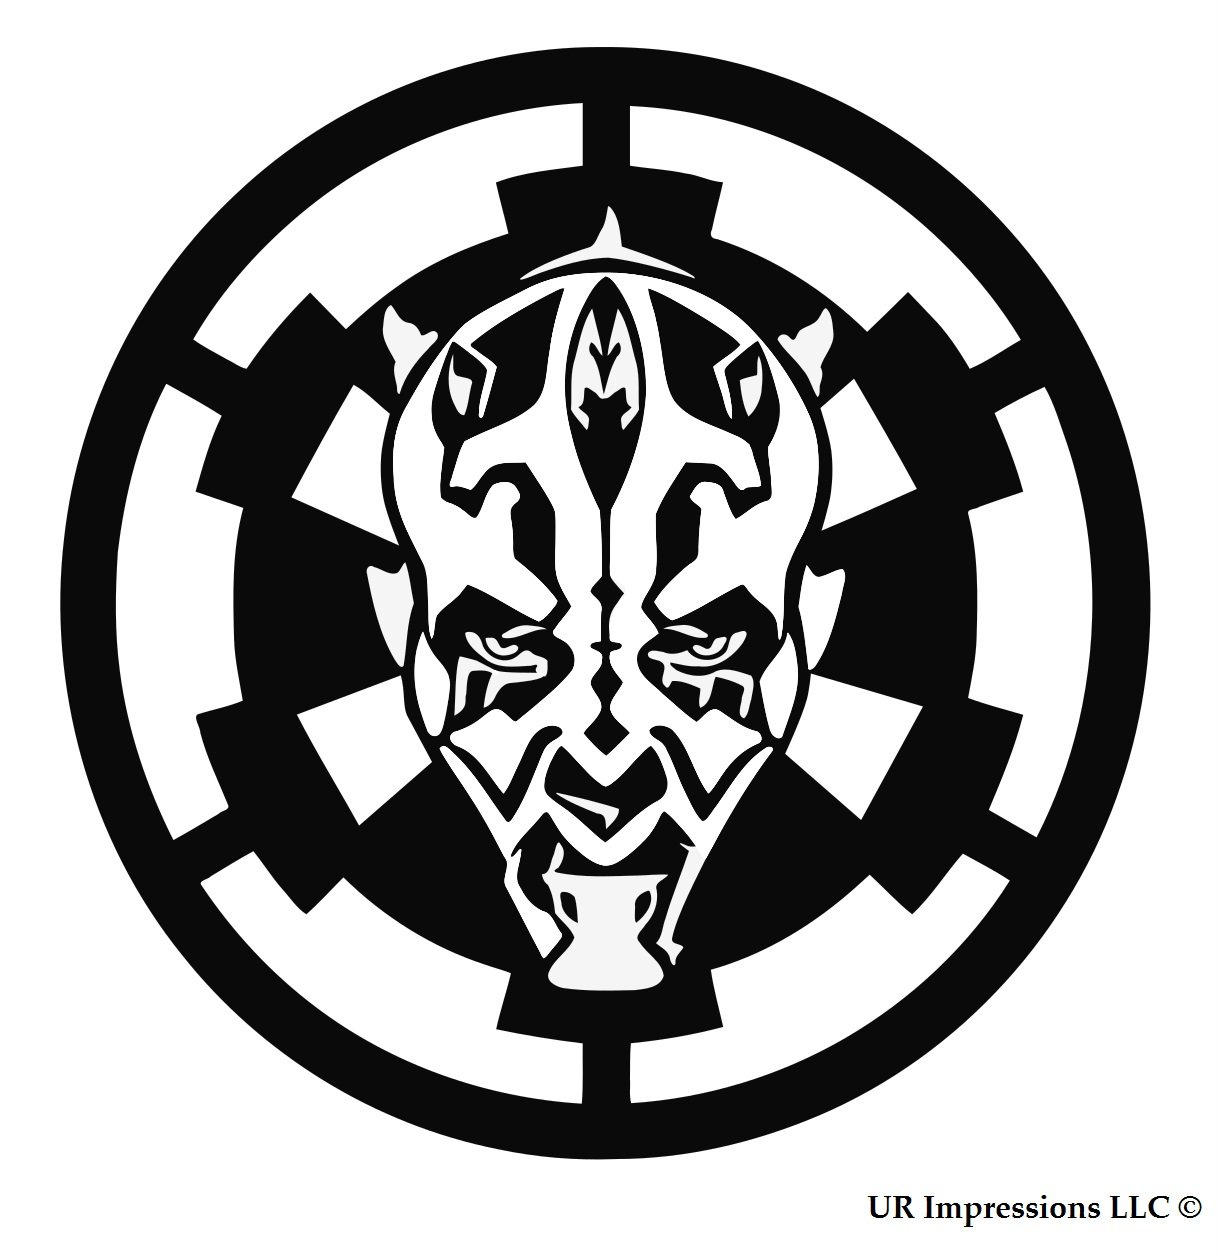 BLK Wars BLK Star Darth Maul over Galactic Empire Insignia Star Wars Inspiredデカールビニールsticker|cars Trucks壁laptop|black|5.5 in|uri463 B076HVKHZD, ジェイエムイーアイ:b20cde4a --- harrow-unison.org.uk